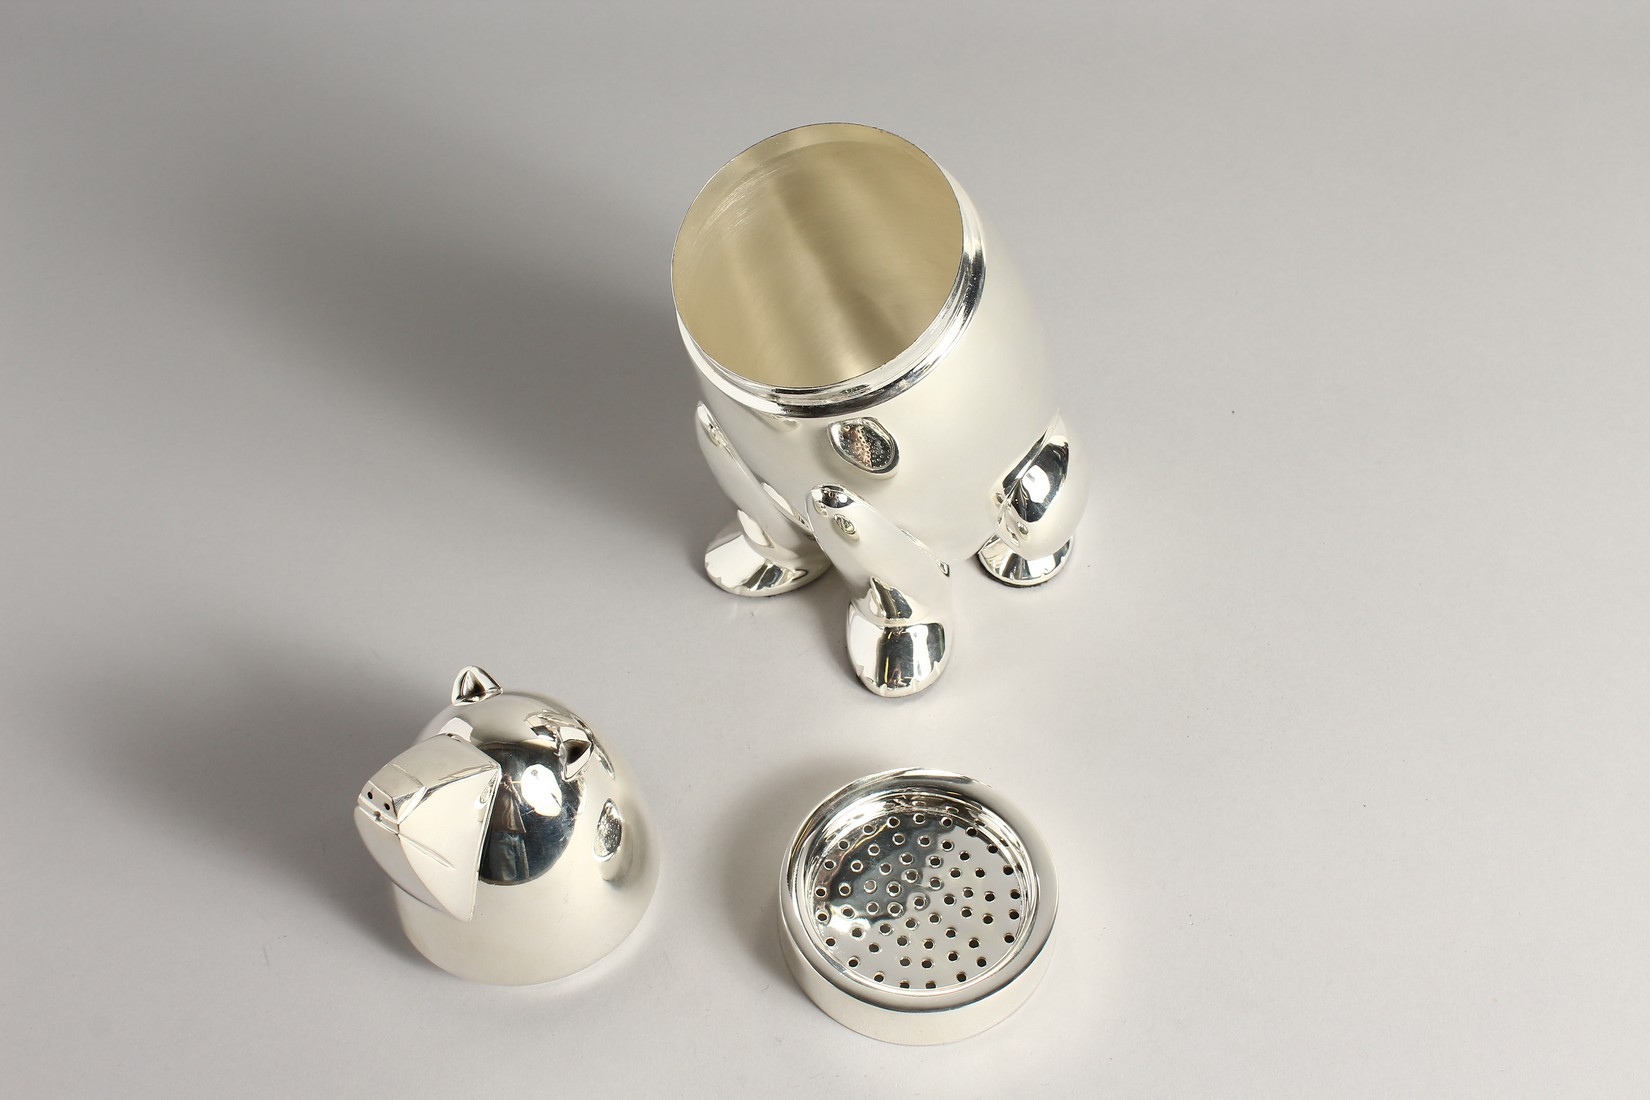 A SILVER PLATED POLAR BEAR COCKTAIL SHAKER 10ins high. - Image 2 of 2